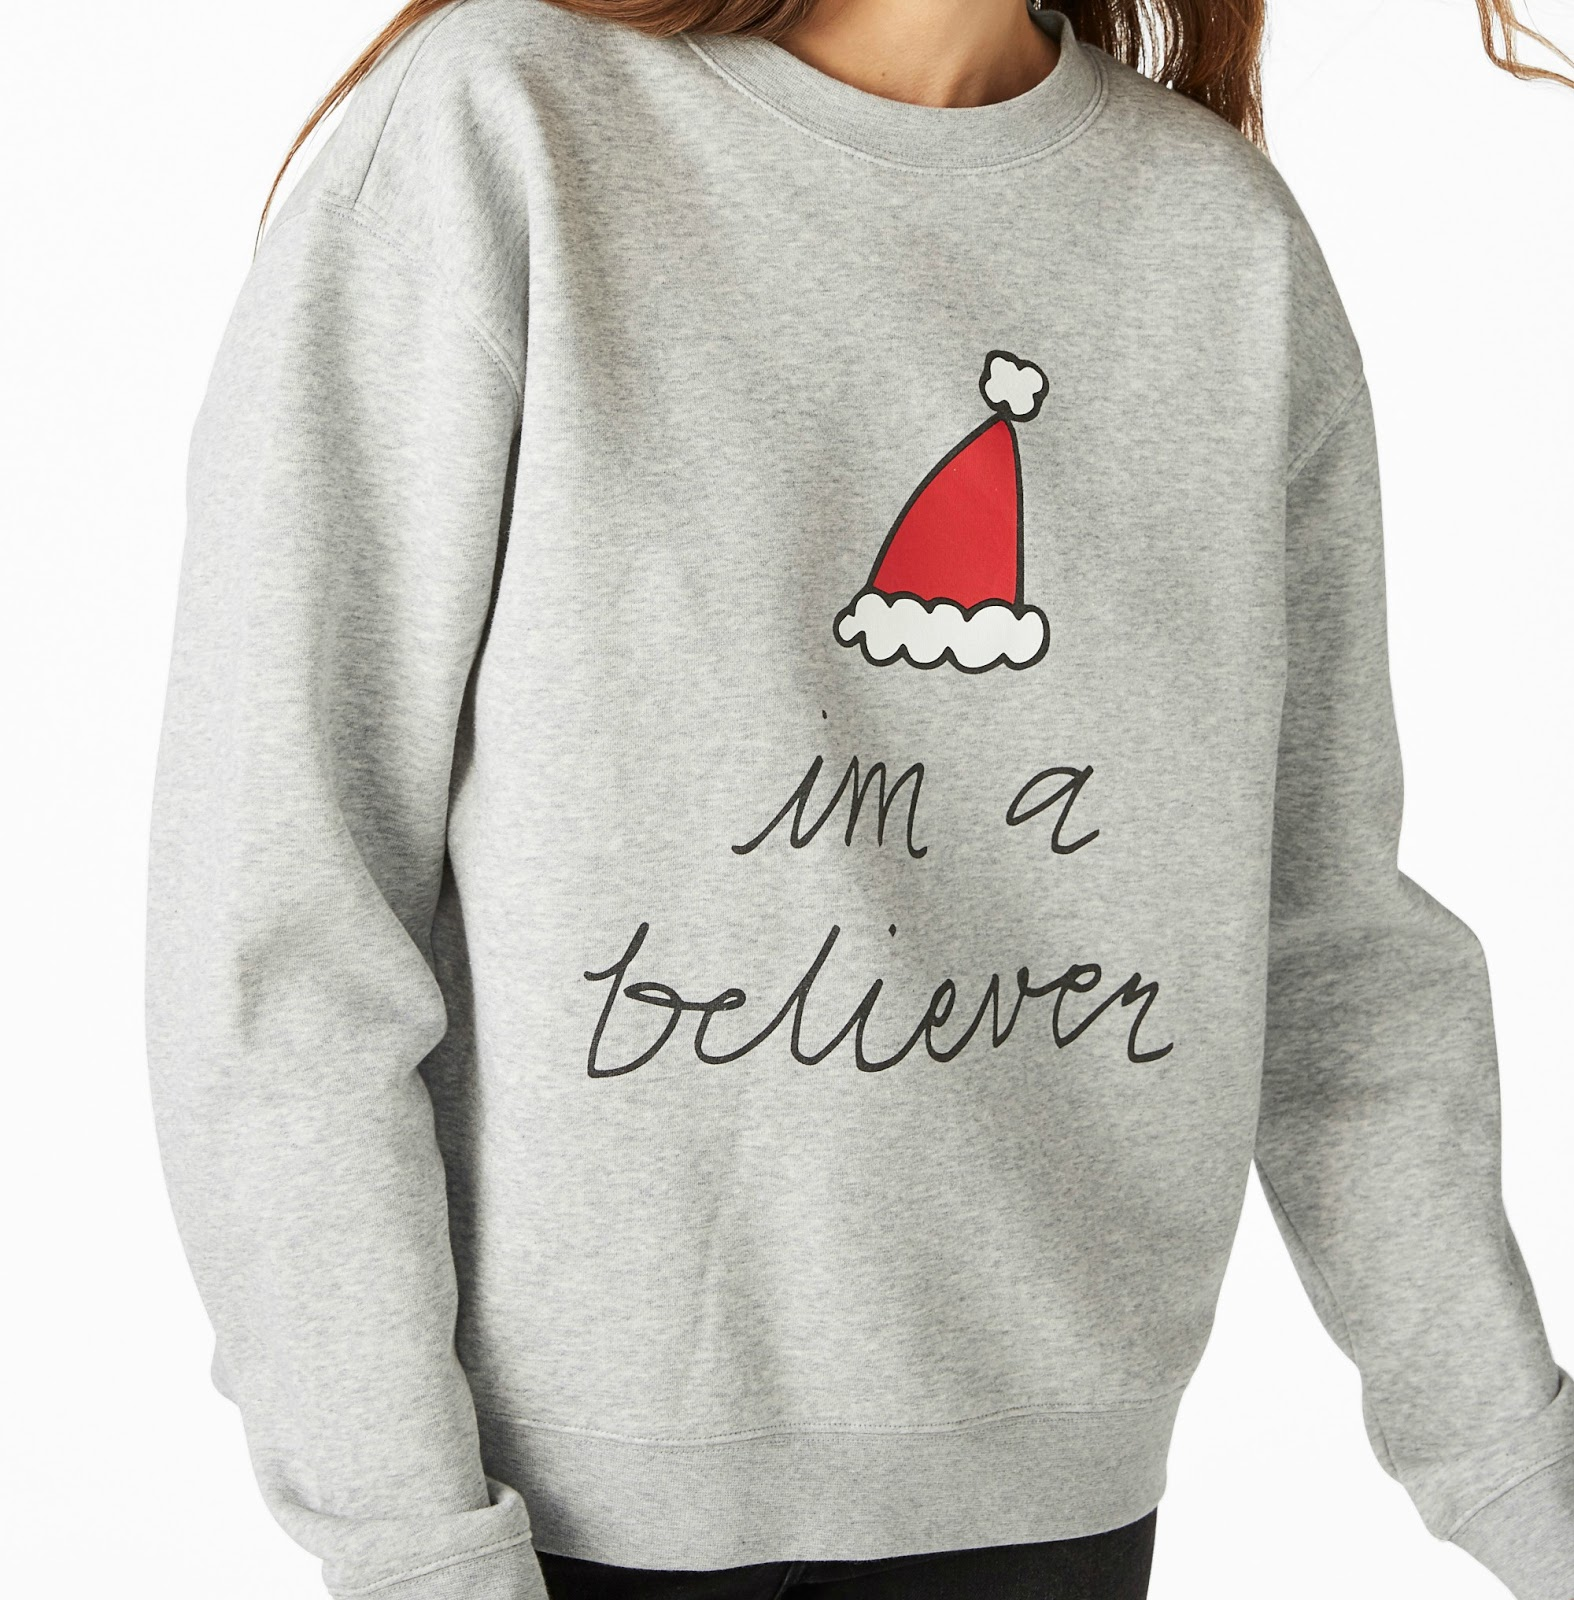 8c425bf0bdbd The 10 Best Christmas Jumpers of 2016